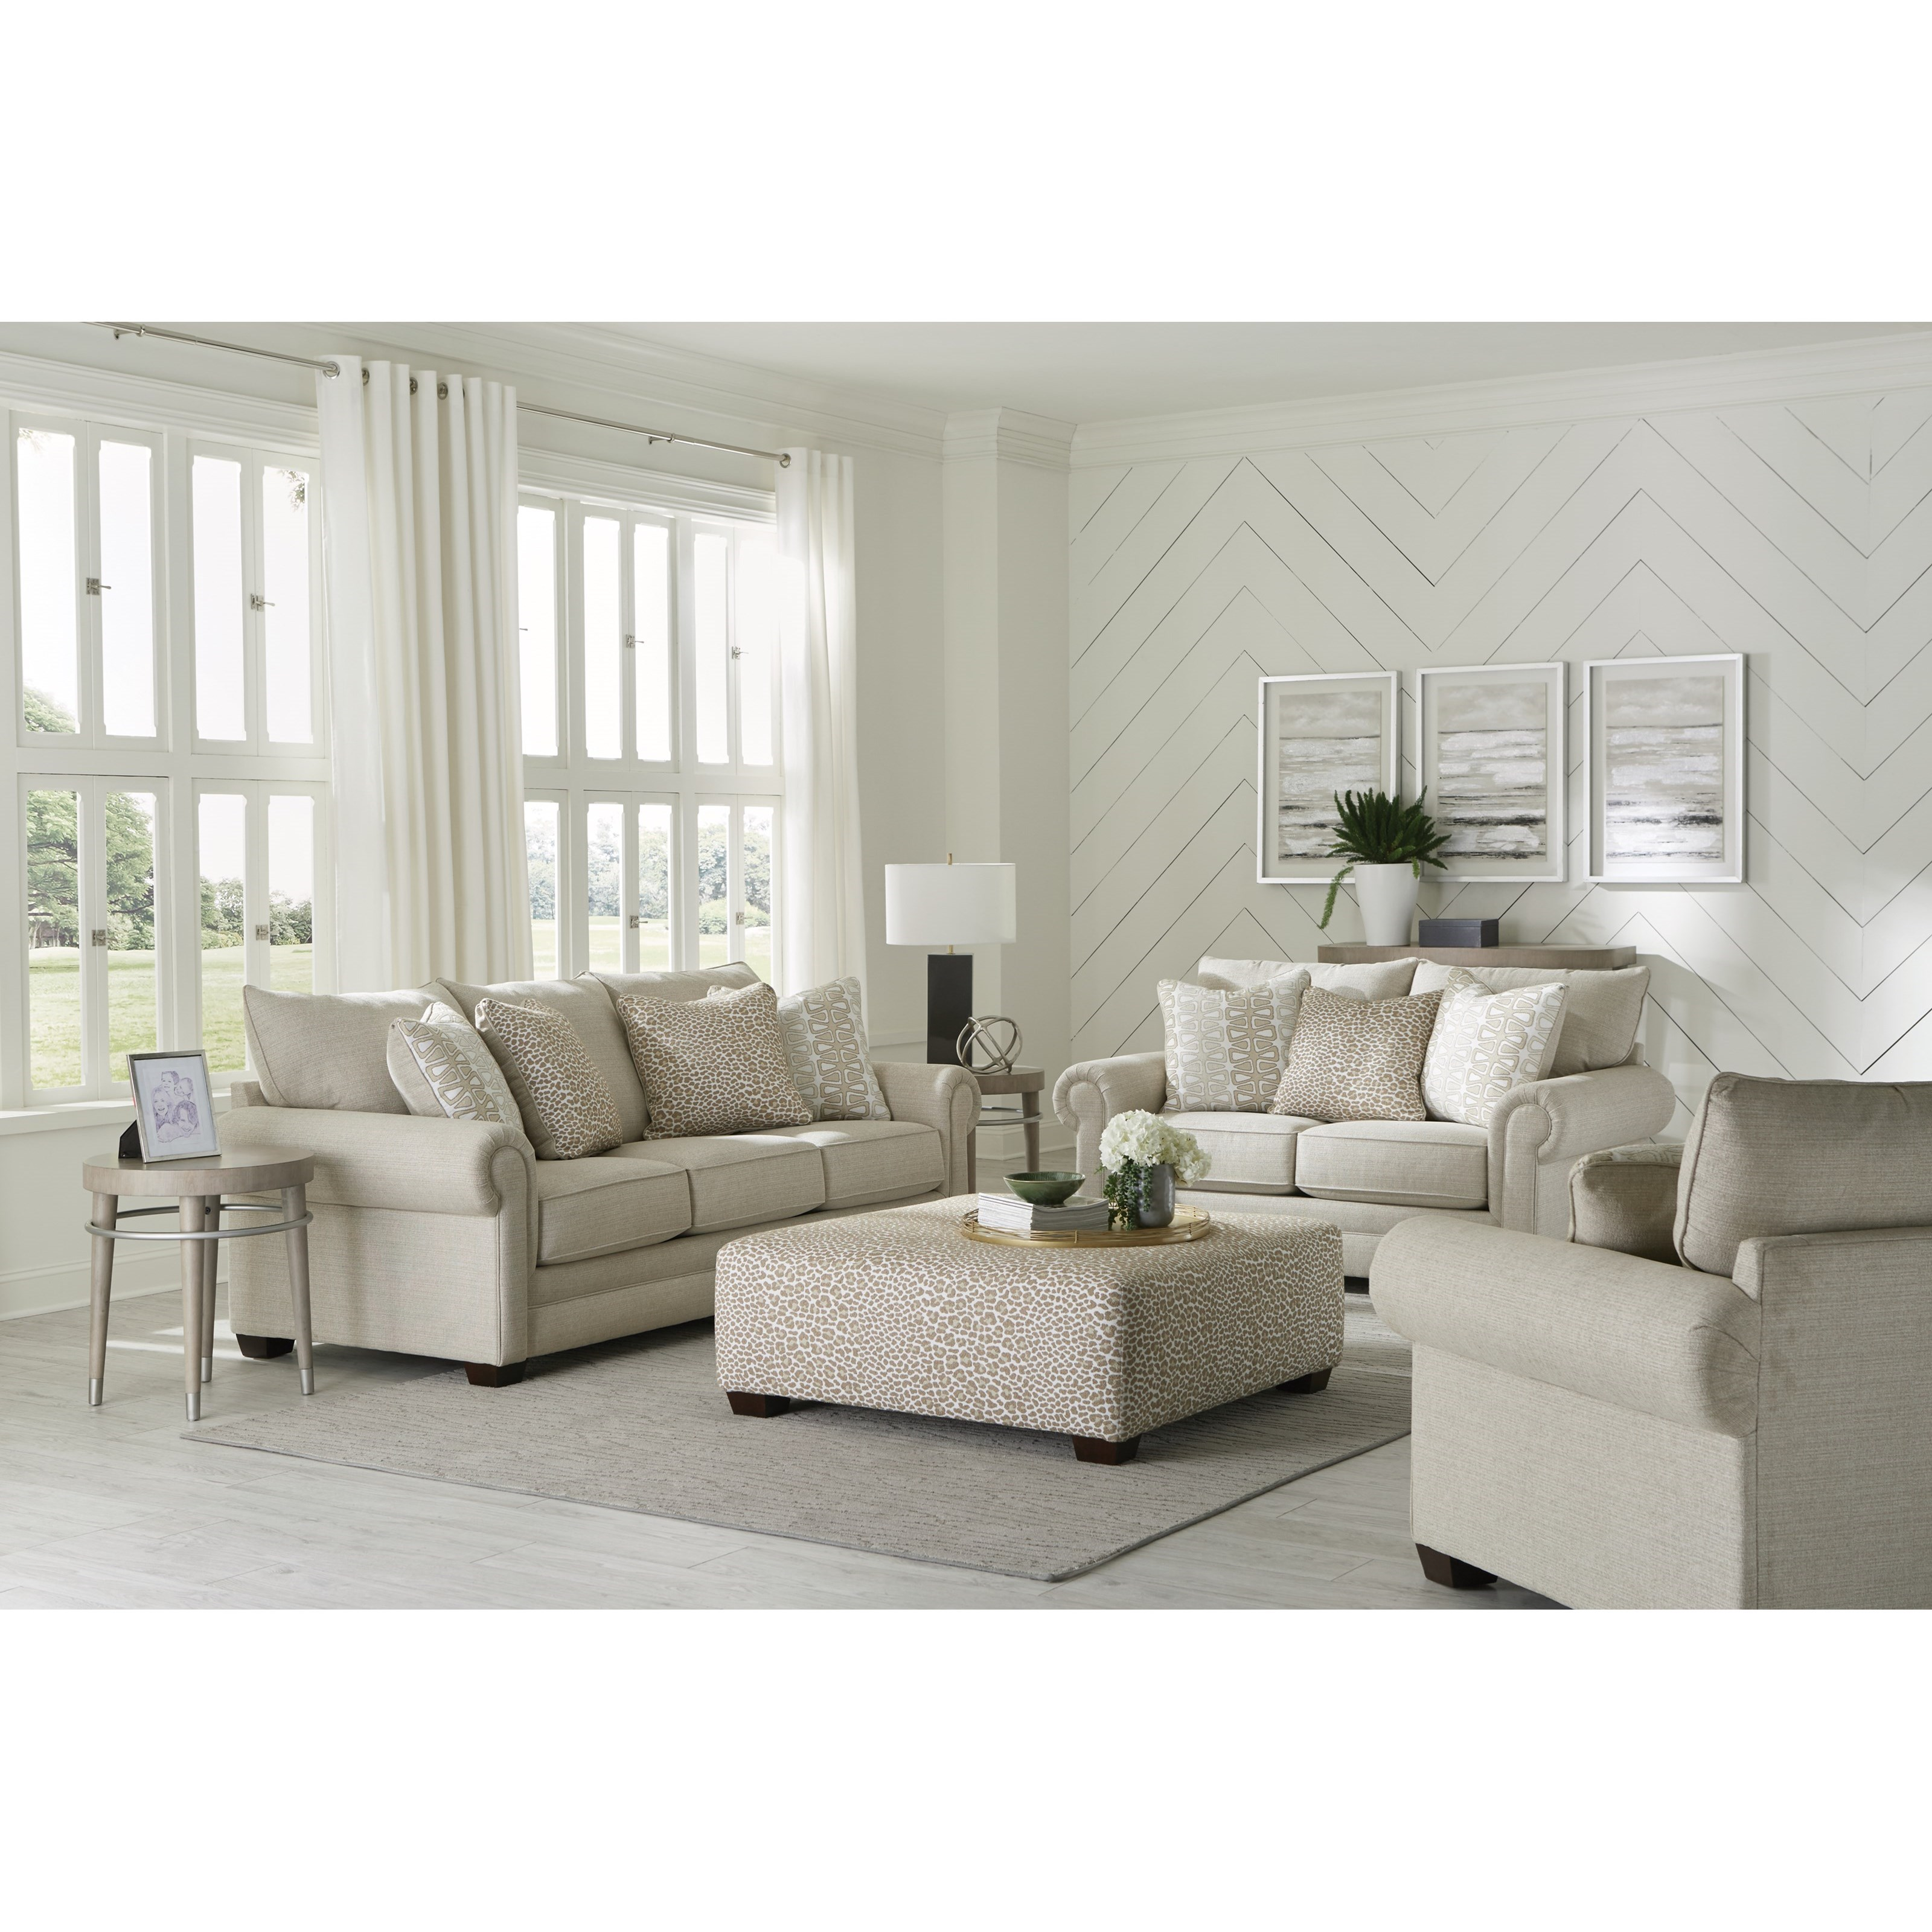 Havana Living Room Group by Jackson Furniture at Northeast Factory Direct